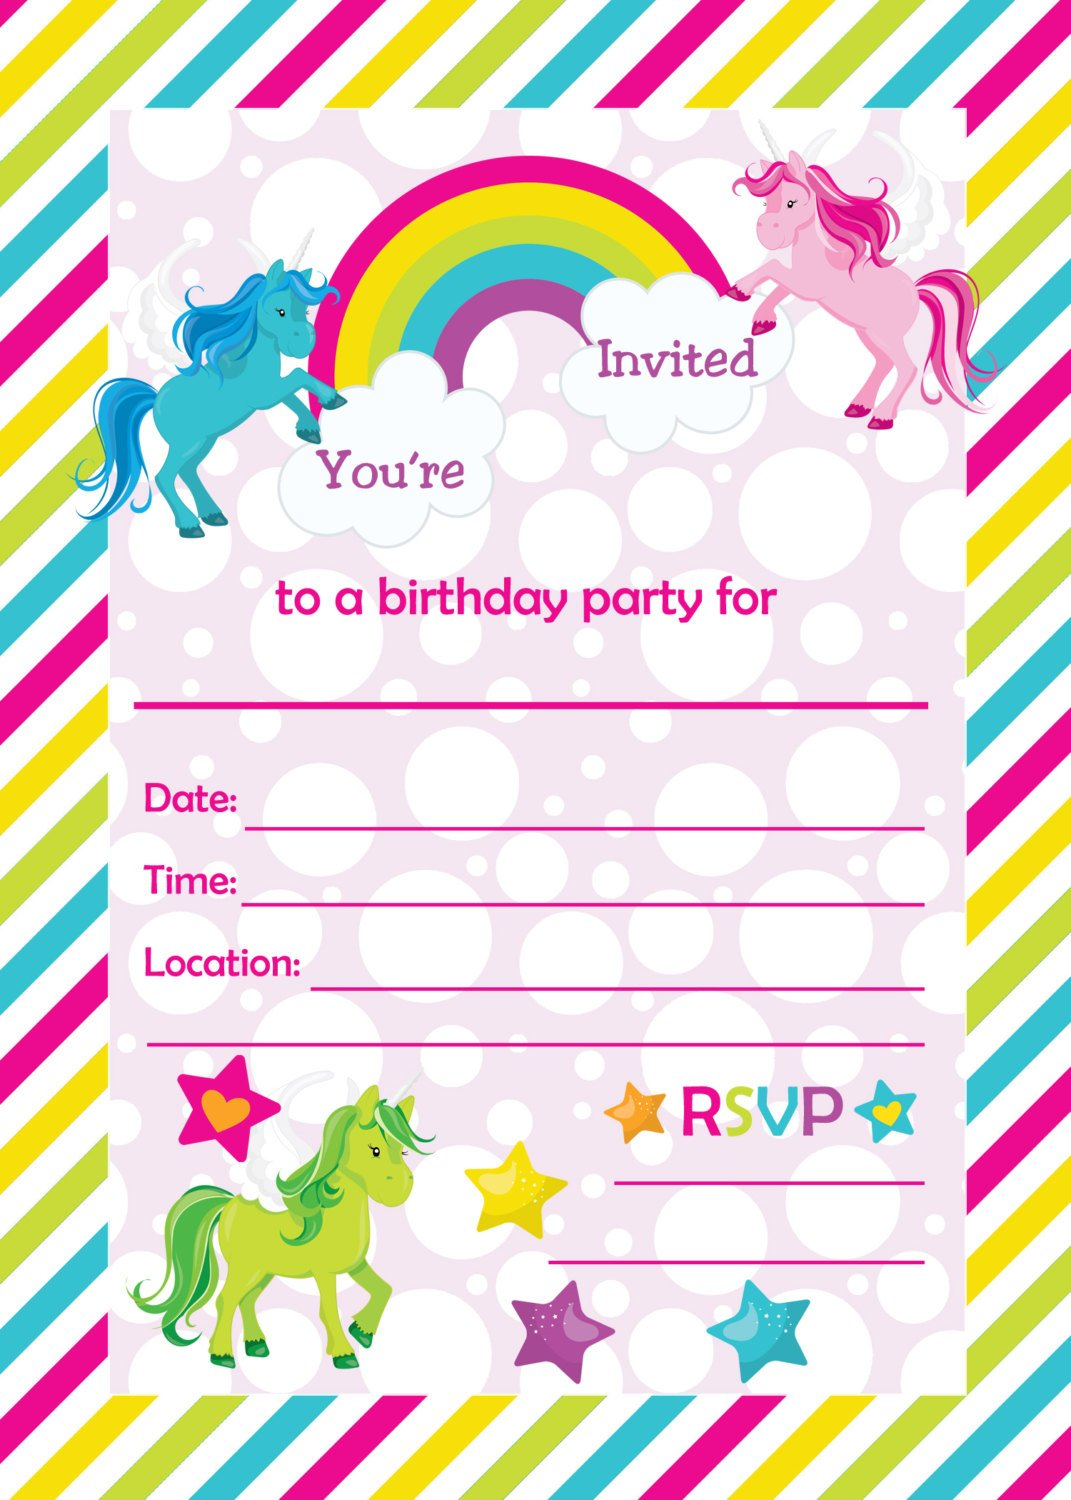 FREE Printable Golden Unicorn Birthday Invitation Template Drevio - Free printable birthday party invitations templates